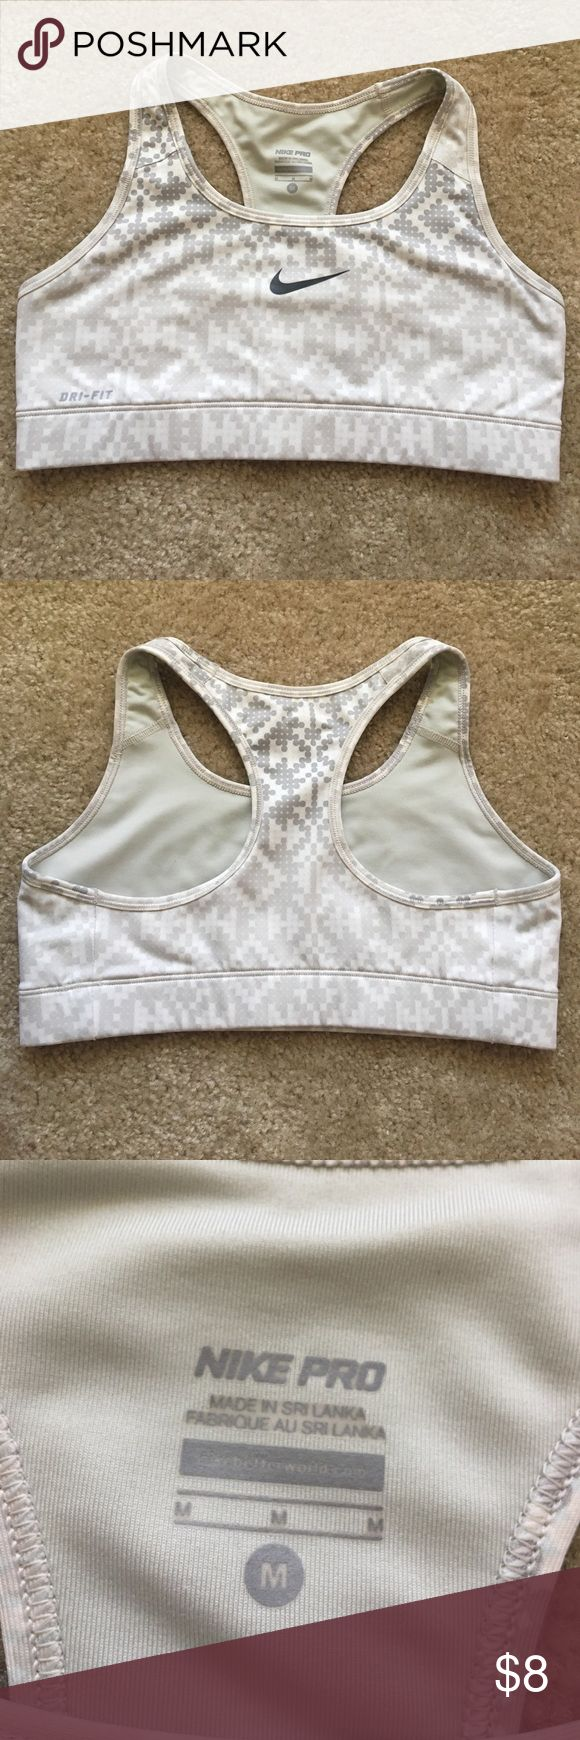 Nike Sports Bra Light gray/cream sports bra in good condition. Nike Intimates & Sleepwear Bras